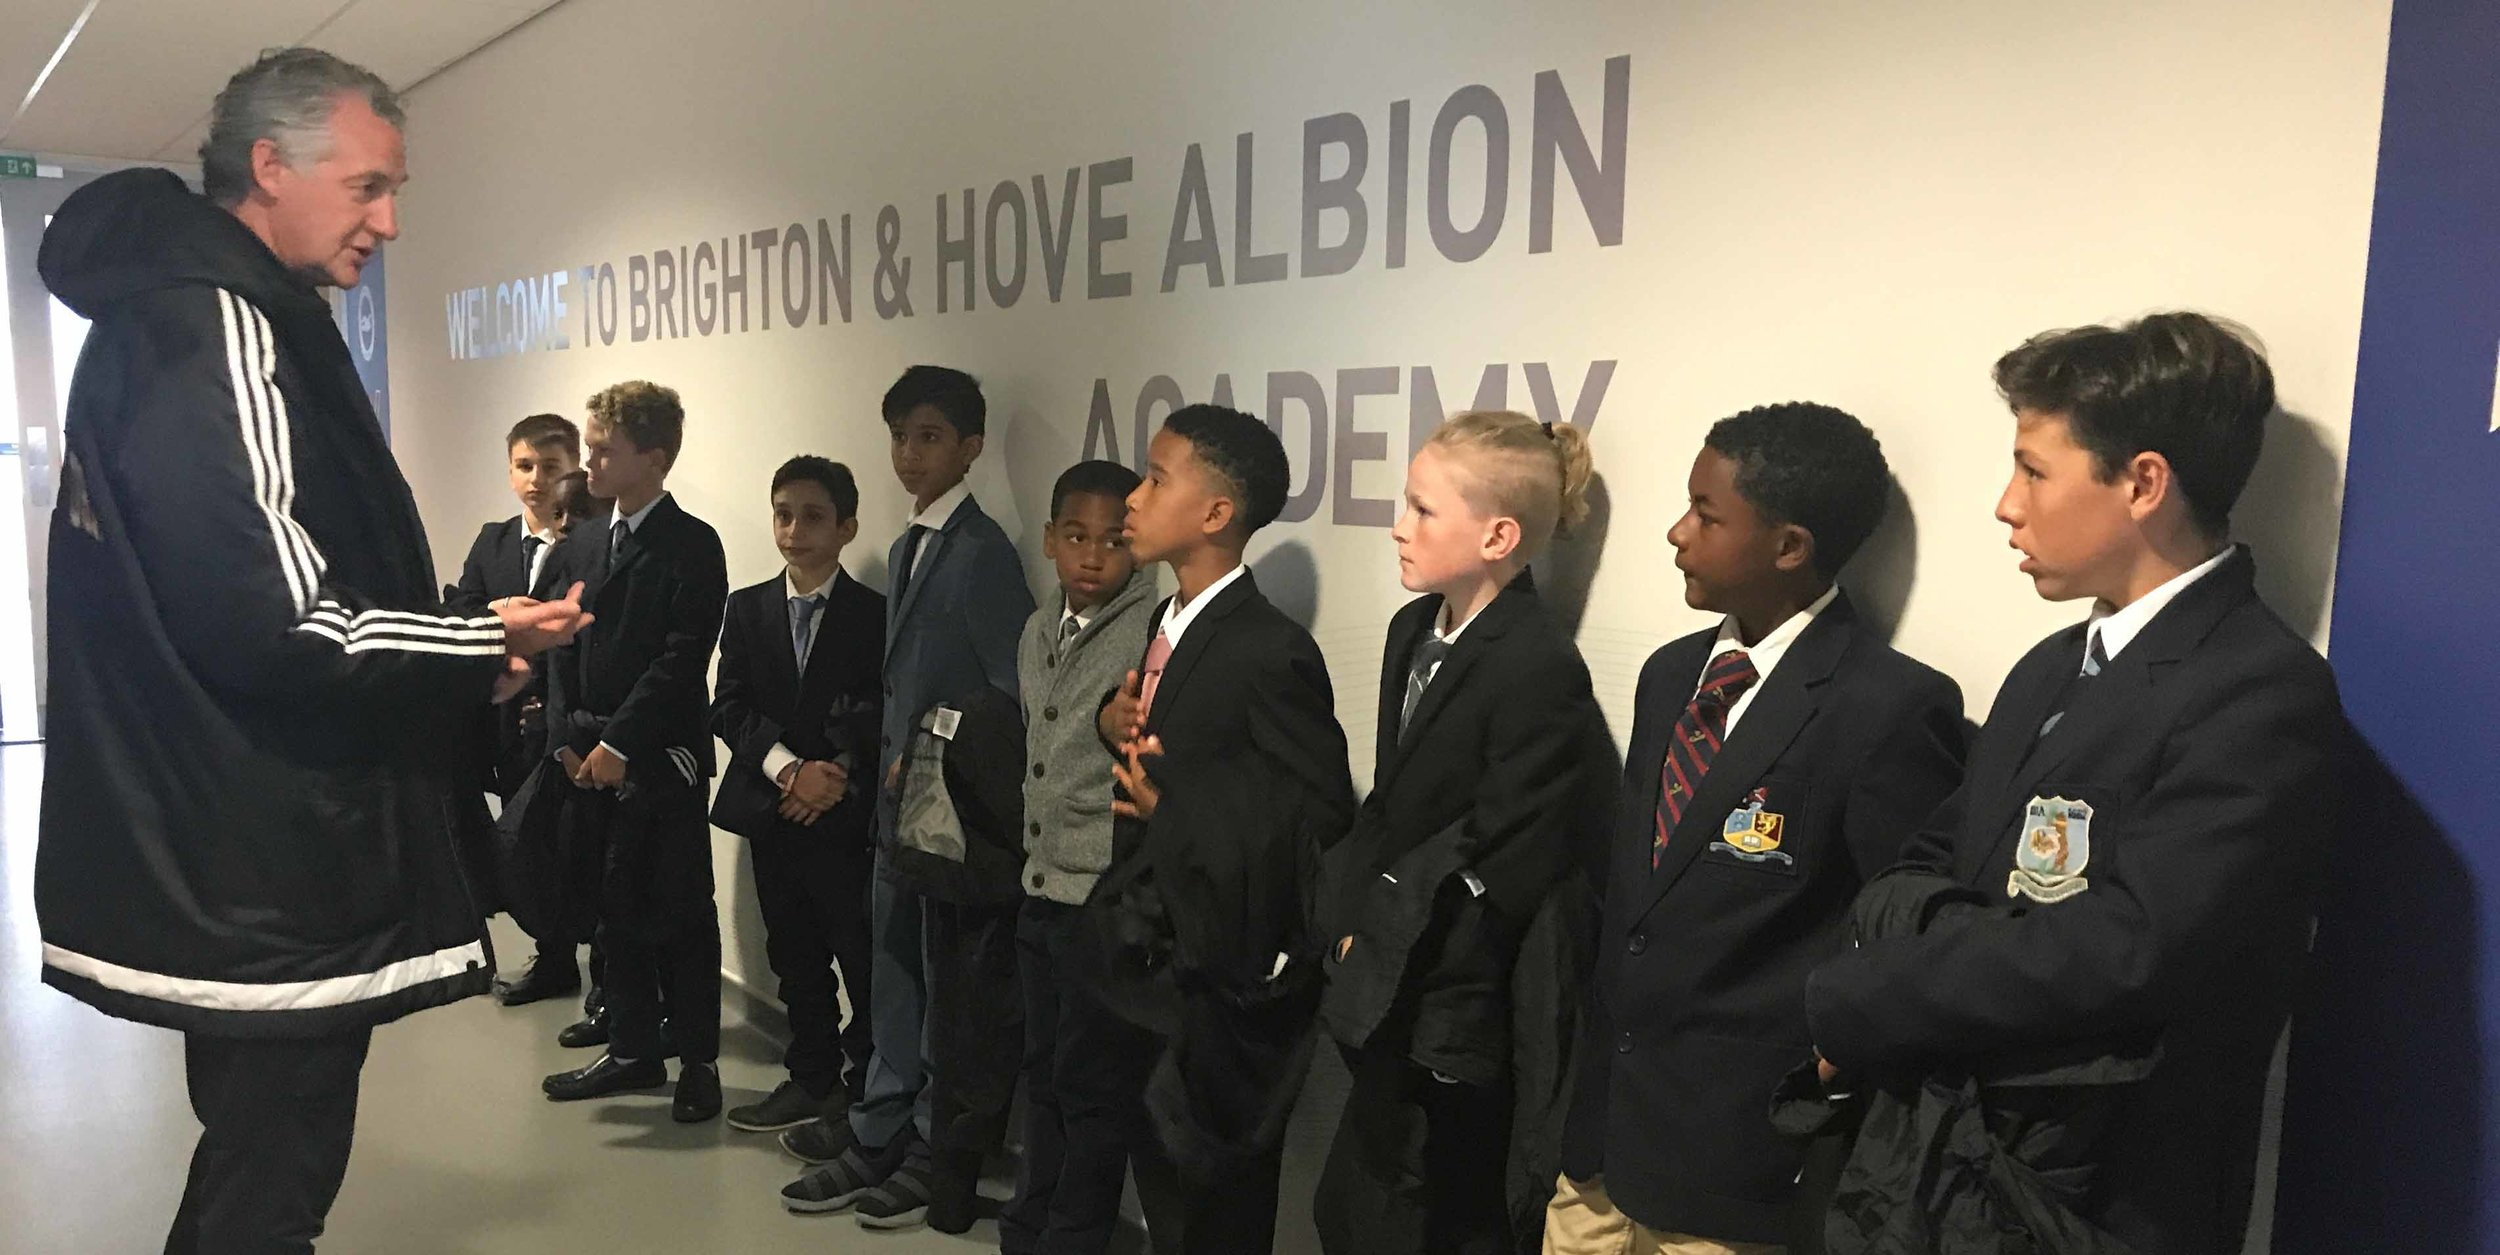 Coach Tony with Squad at Brighton & Hove Albion Academy